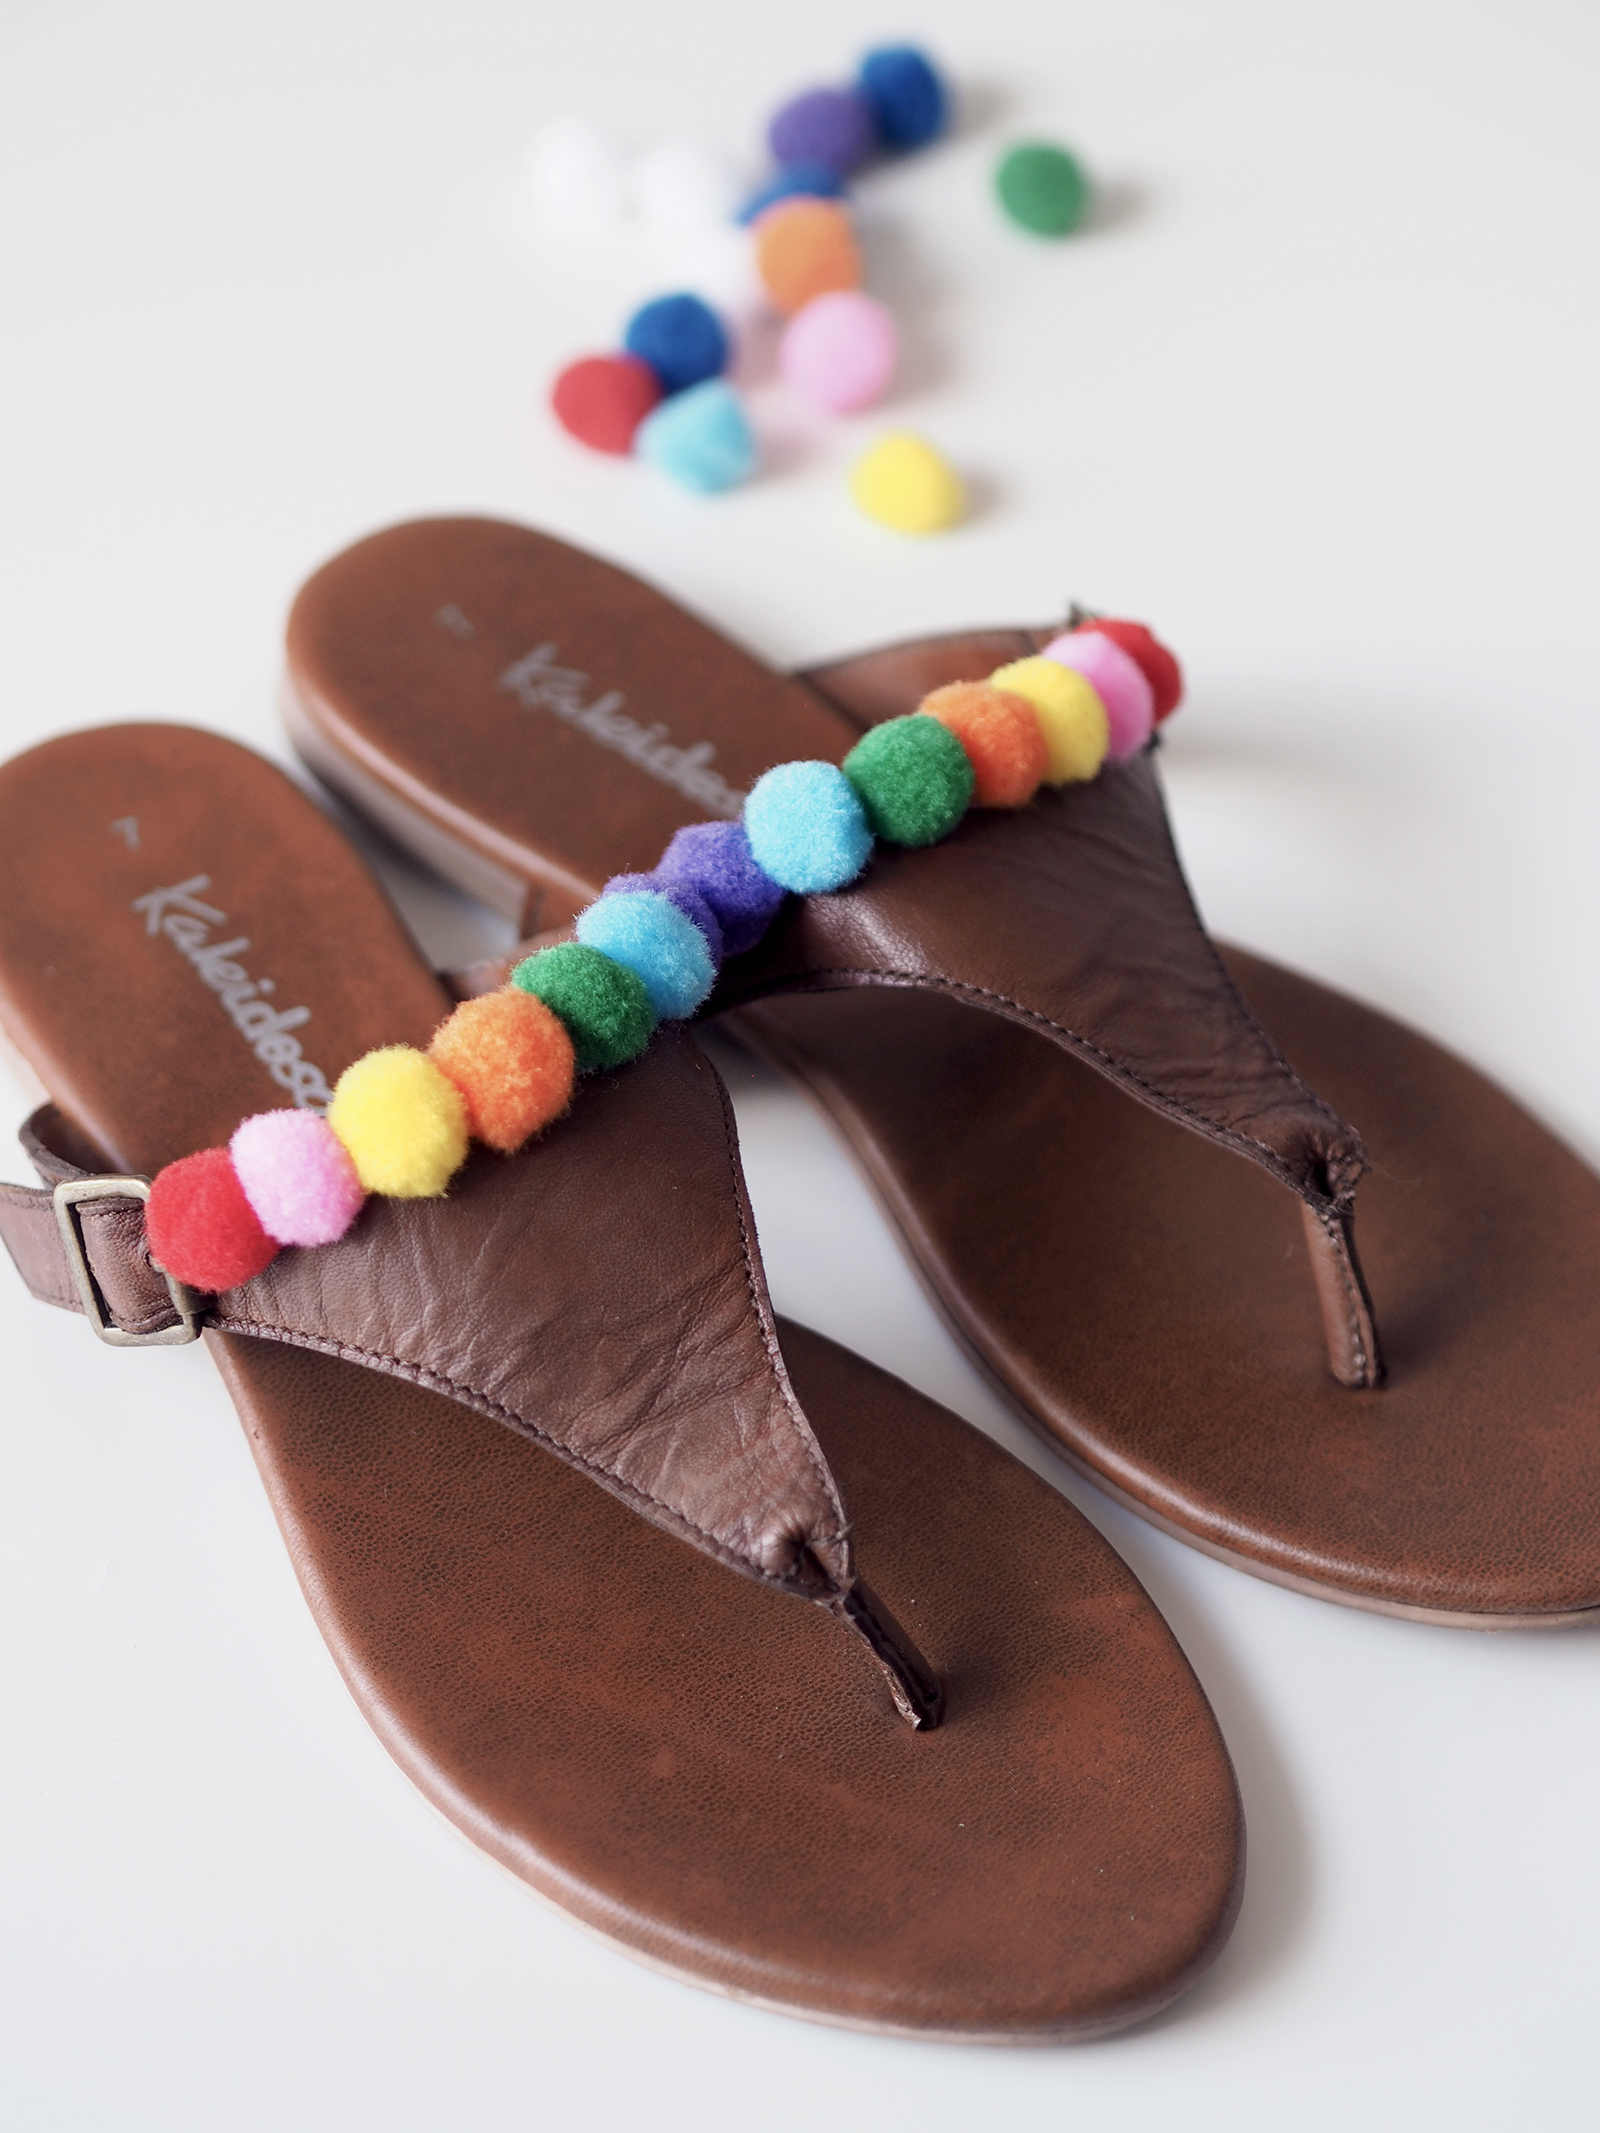 How to Make Hot Glue Sandals